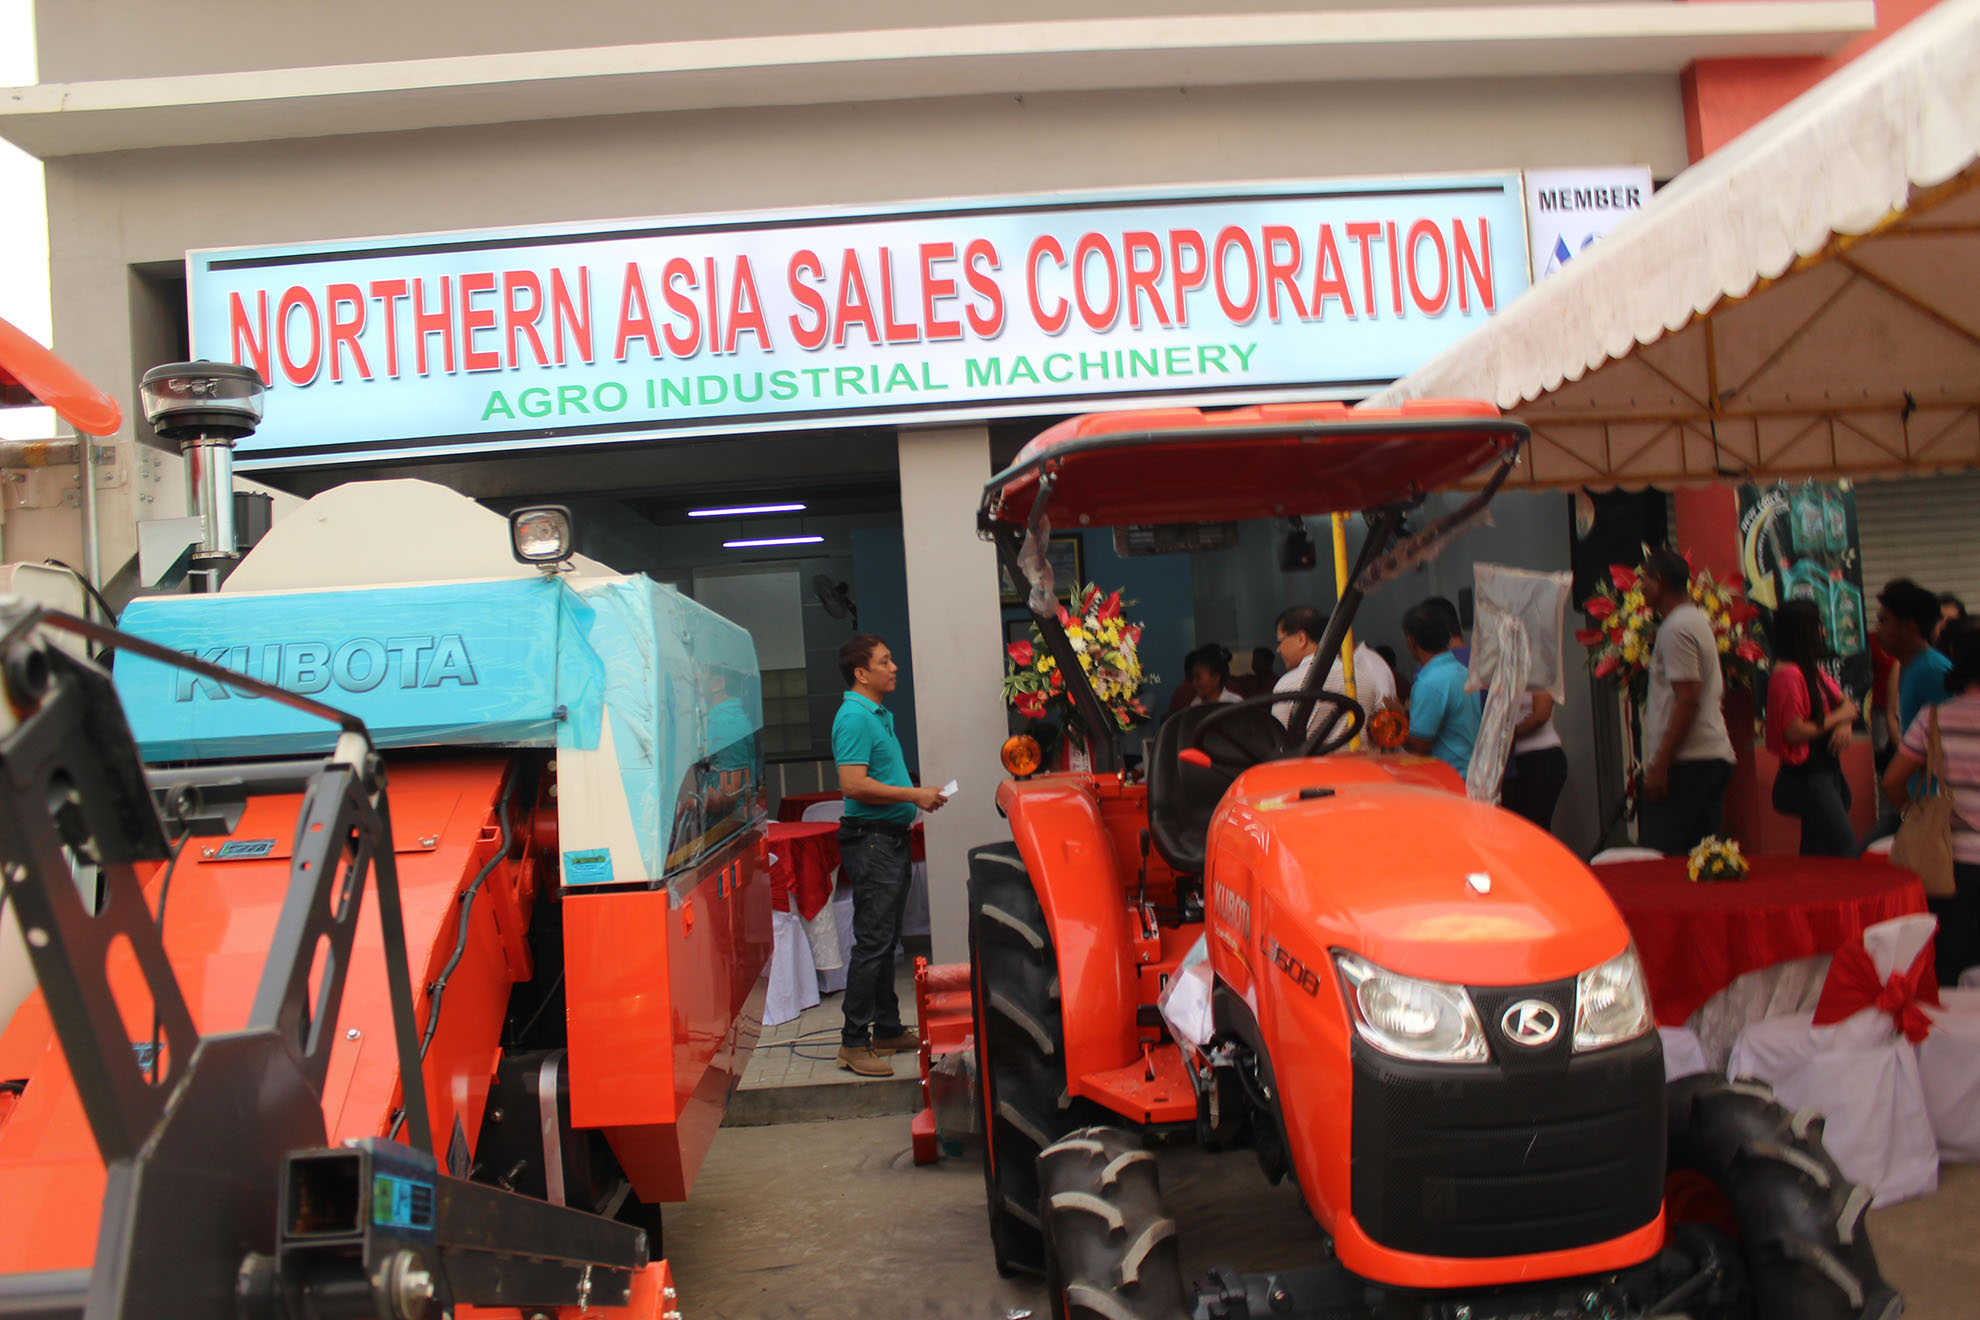 Opening of VIGAN Branch (Northern Asia Sales Corporation)